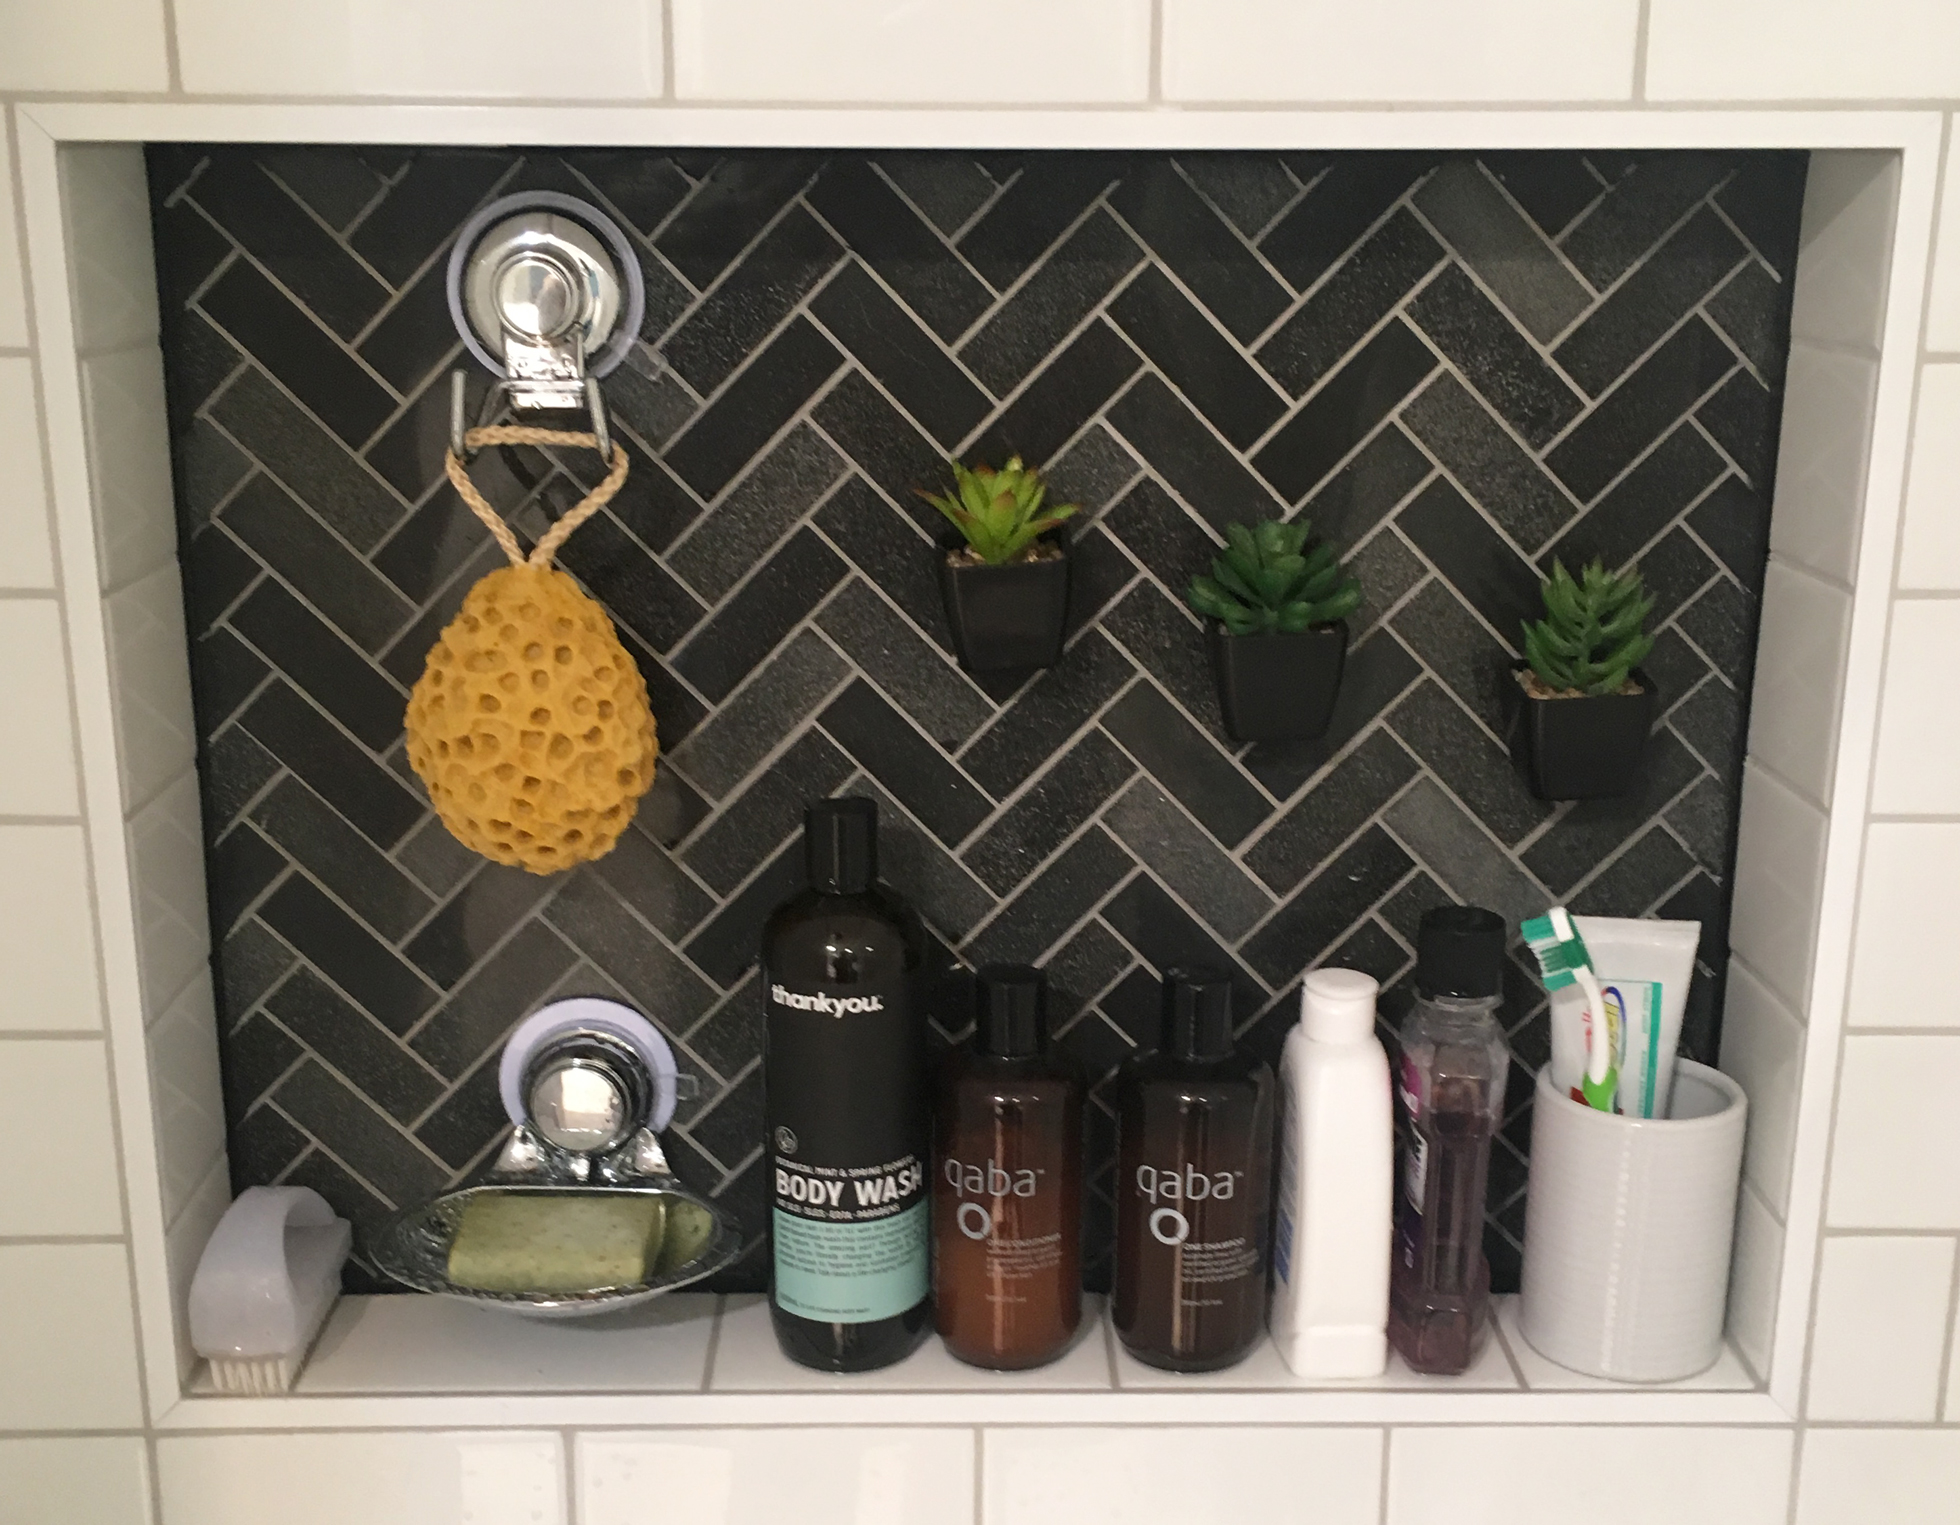 A black tiled built-in shelf in a white tiled shower